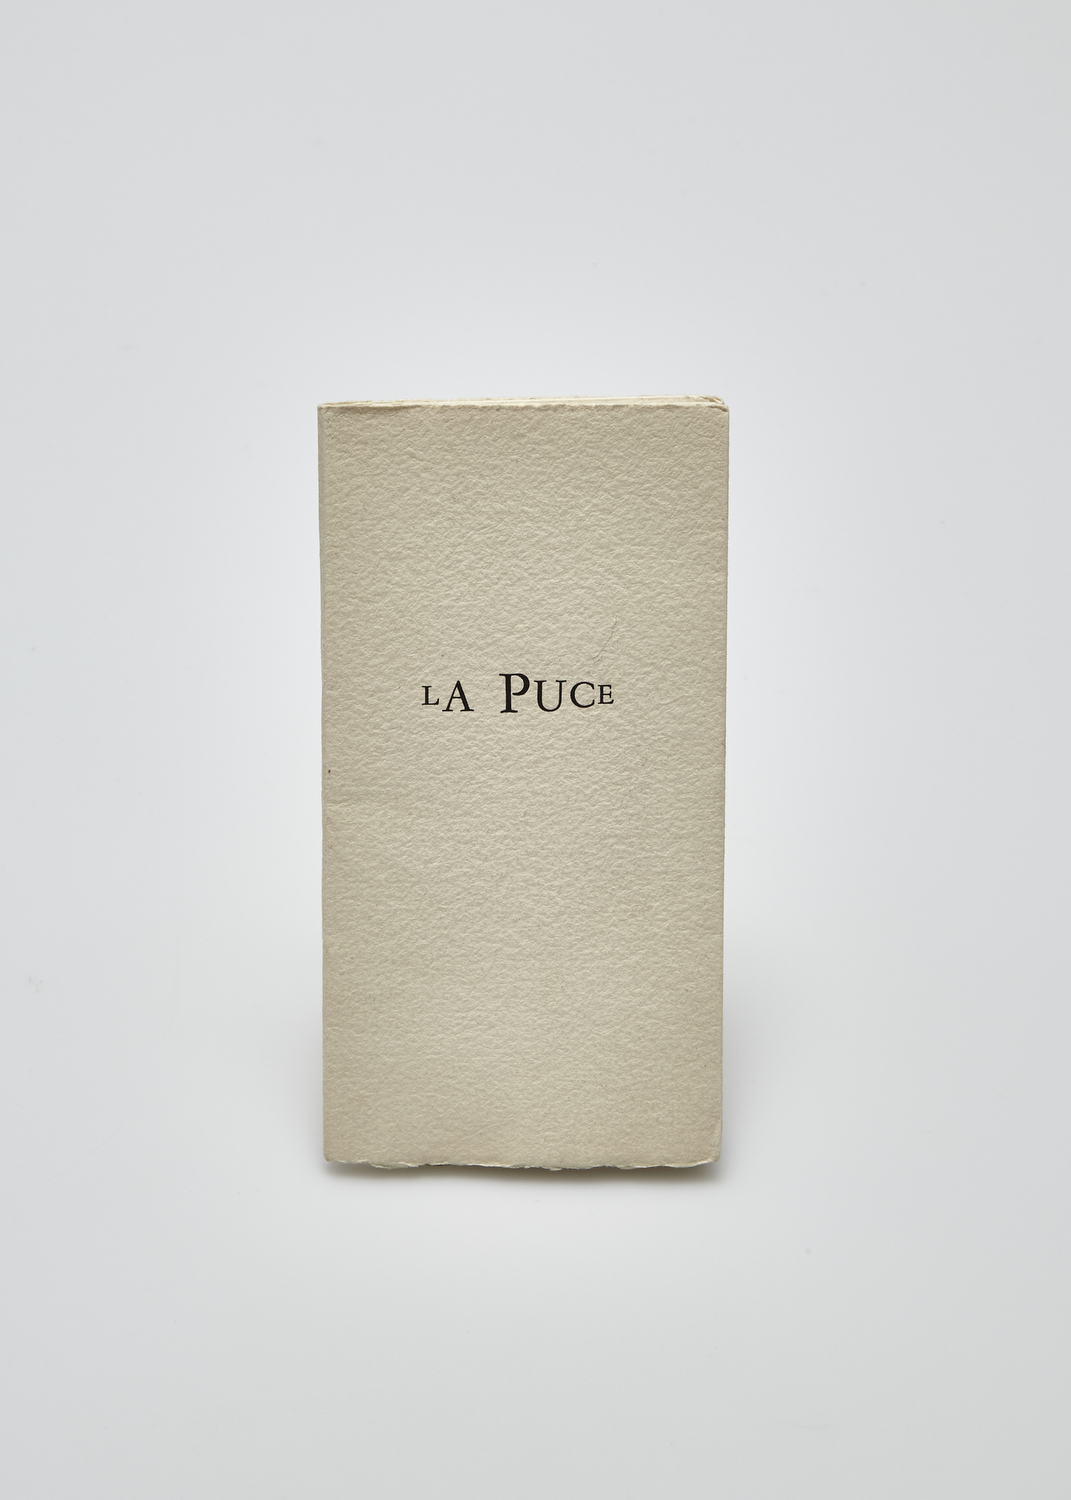 La Puce    Text by Fernando Arrabal and engarving by Julius Baltazar  1984 | 16 x 8 cm | eau forte and typography | 99 prints